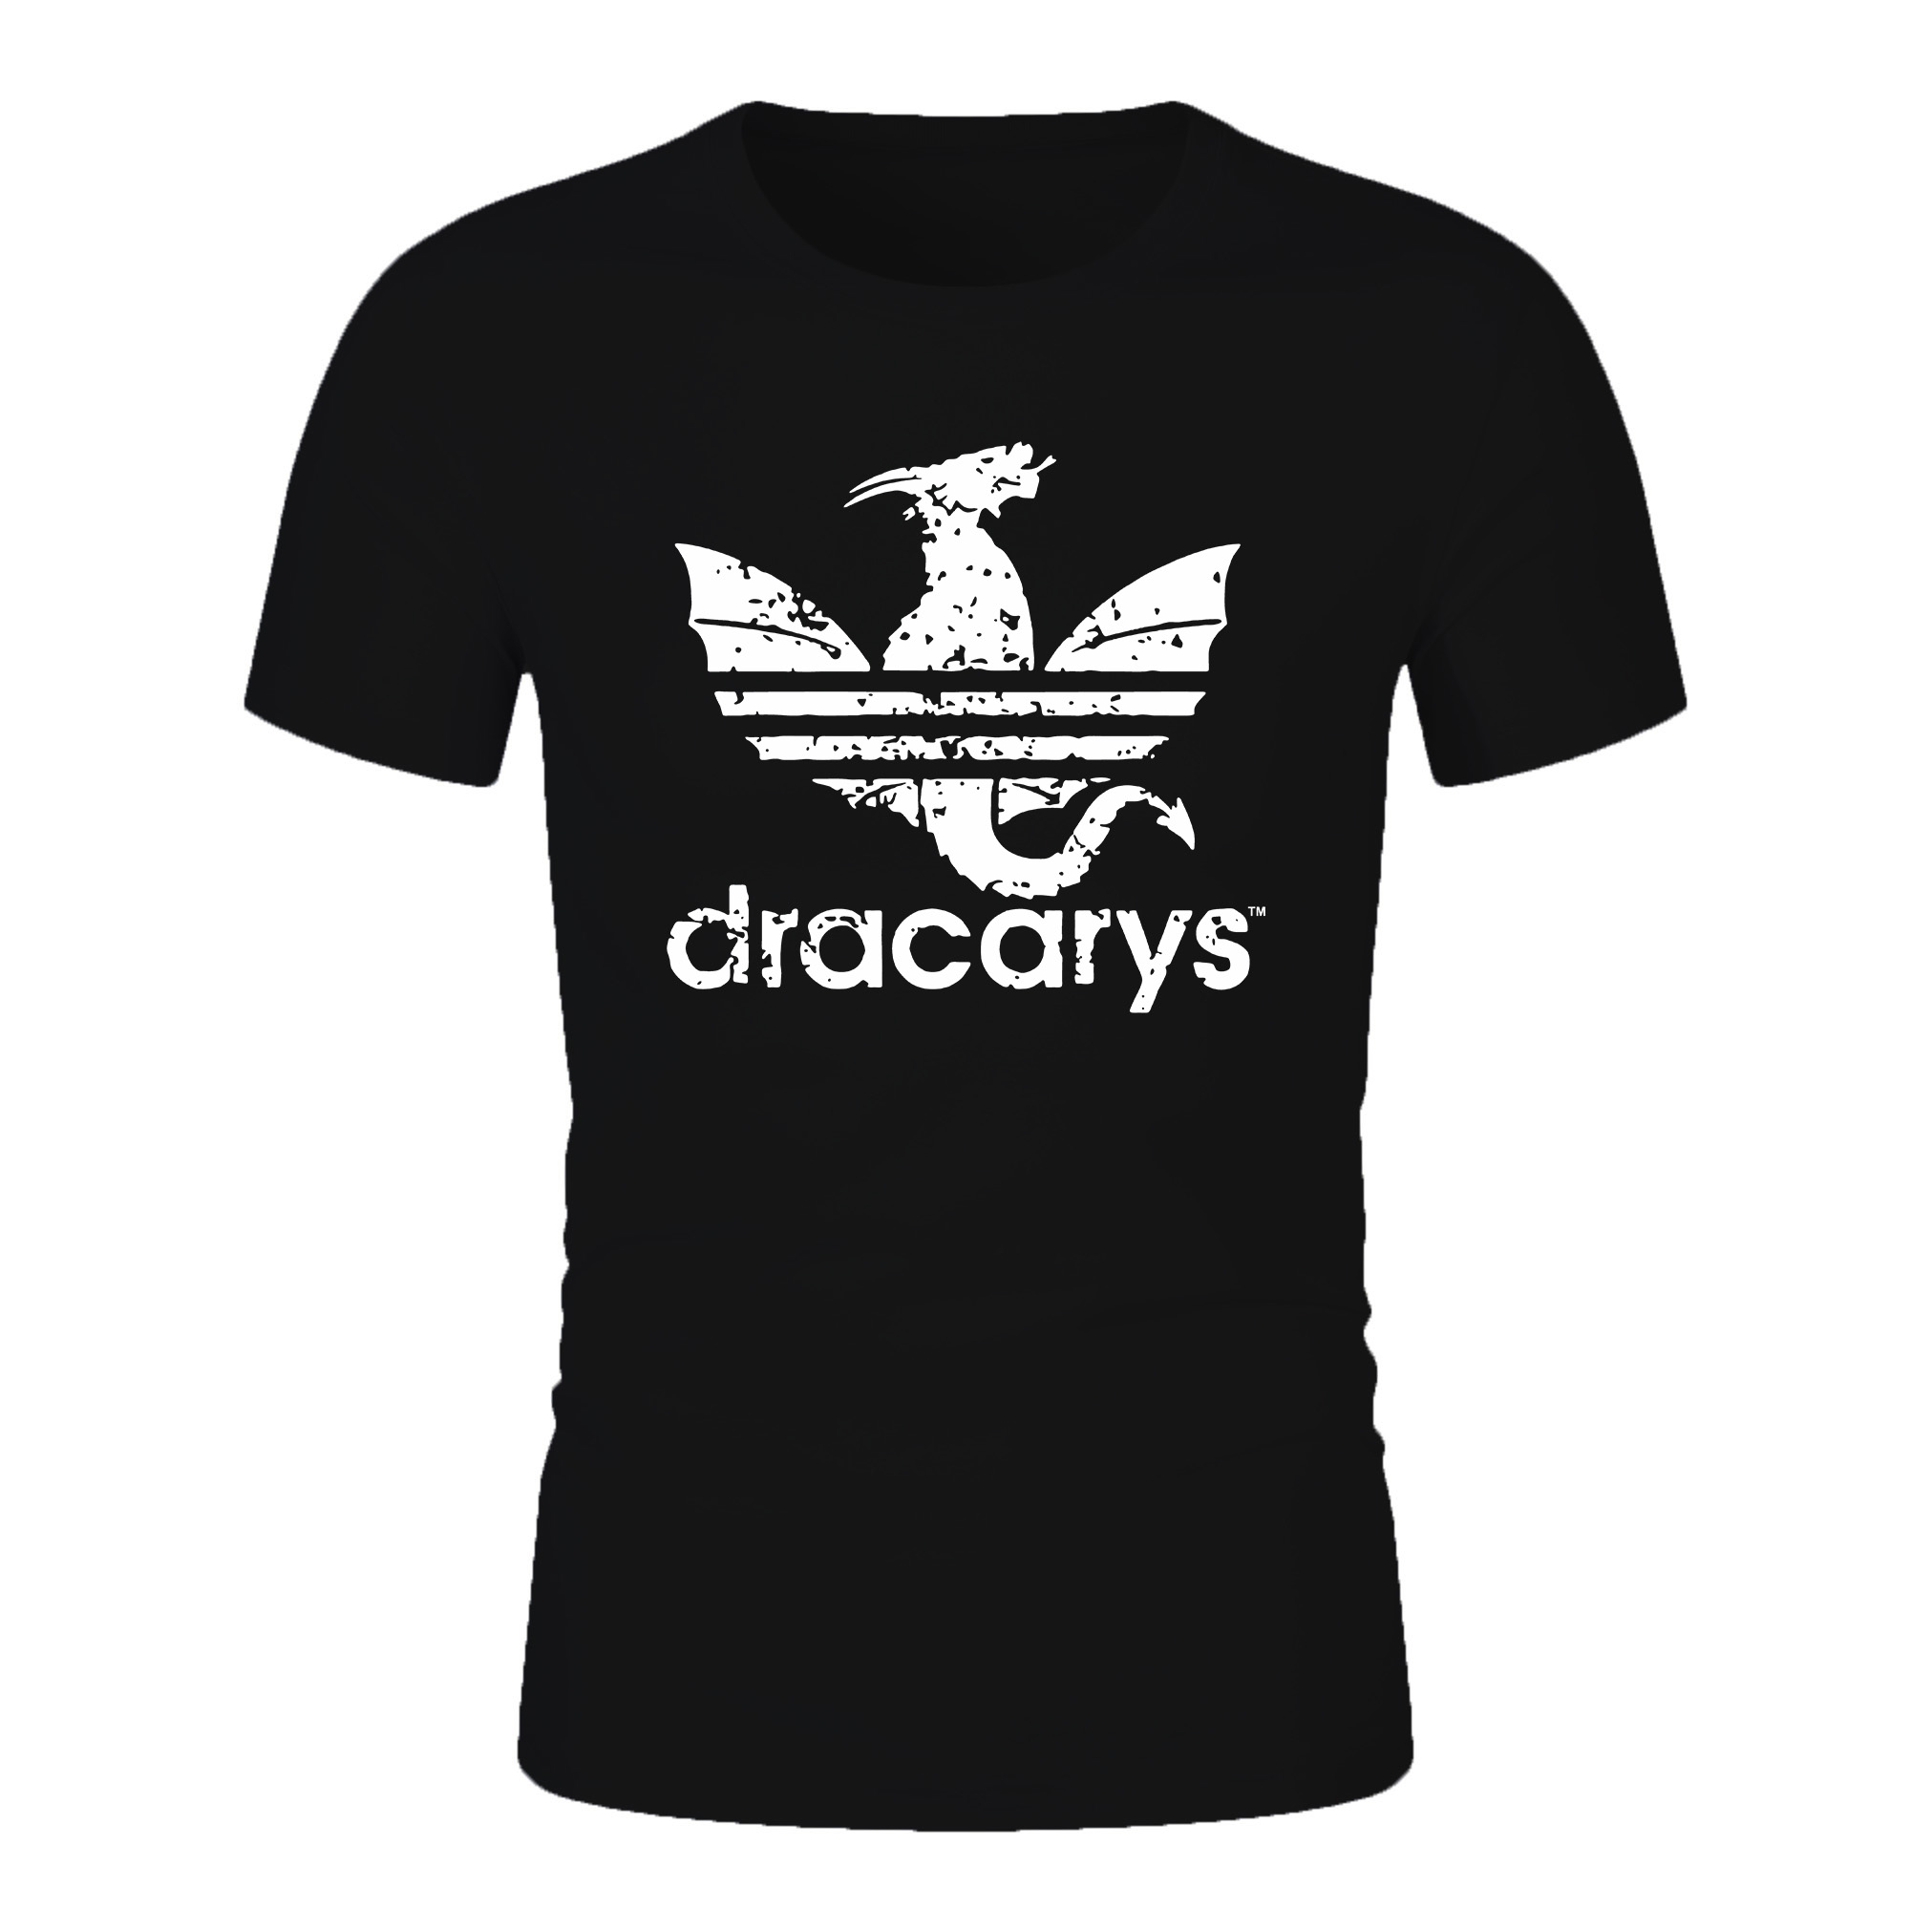 Dracarys tshirt Game Of Thrones t shirt Brand T-Shirt harajuku Vintage Camisetas hombre Tshirt Men Women